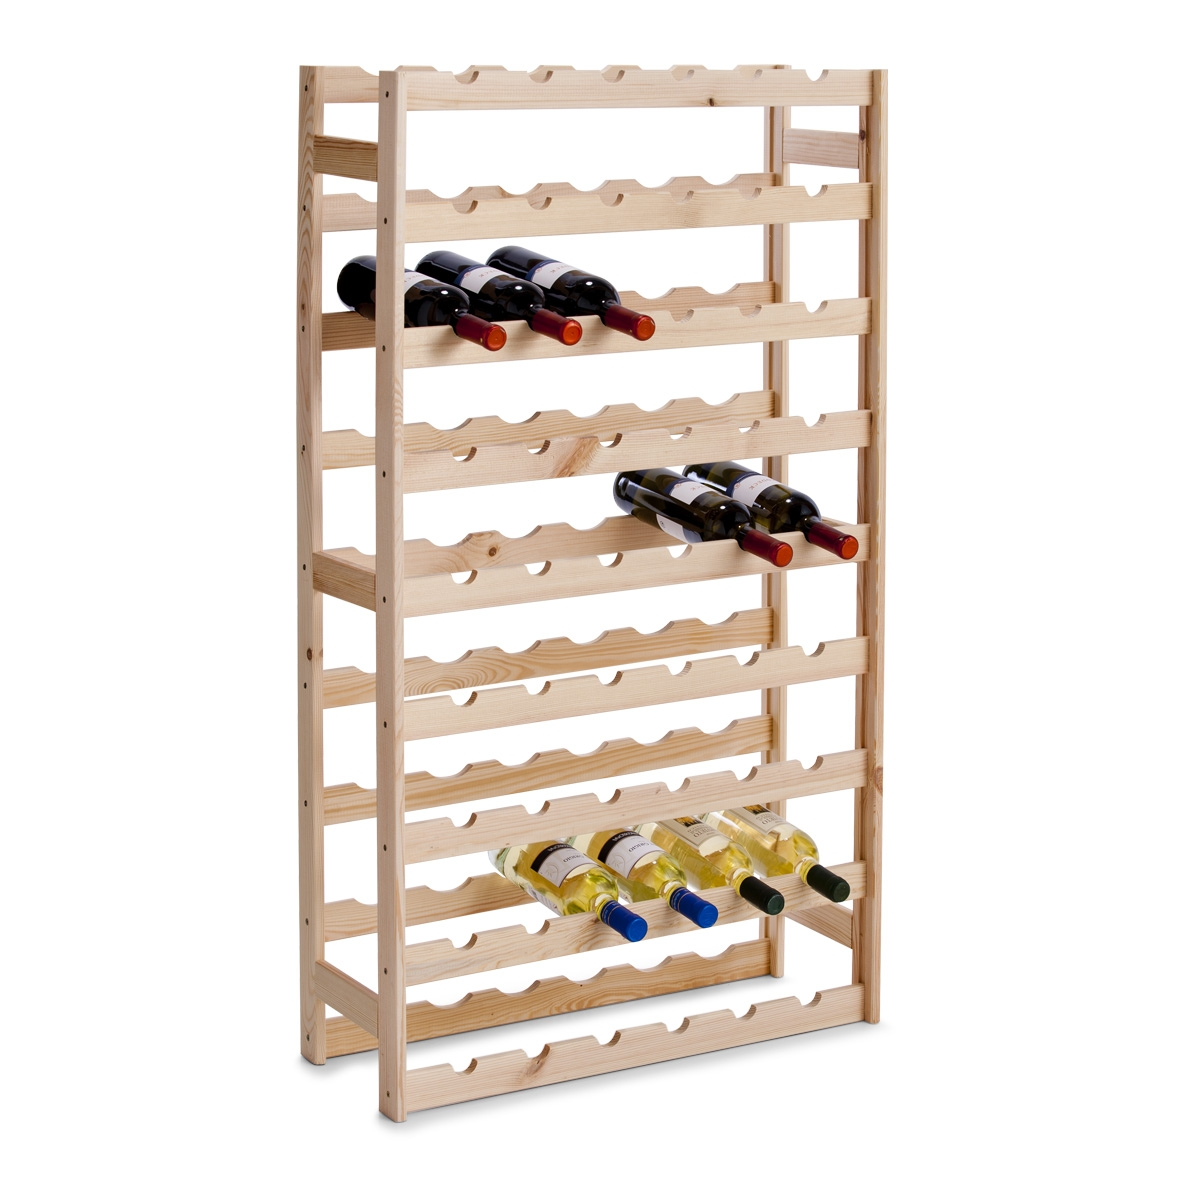 Suport din lemn de pin pentru 54 sticle Rack Natural, l67,5xA25xH118 cm imagine